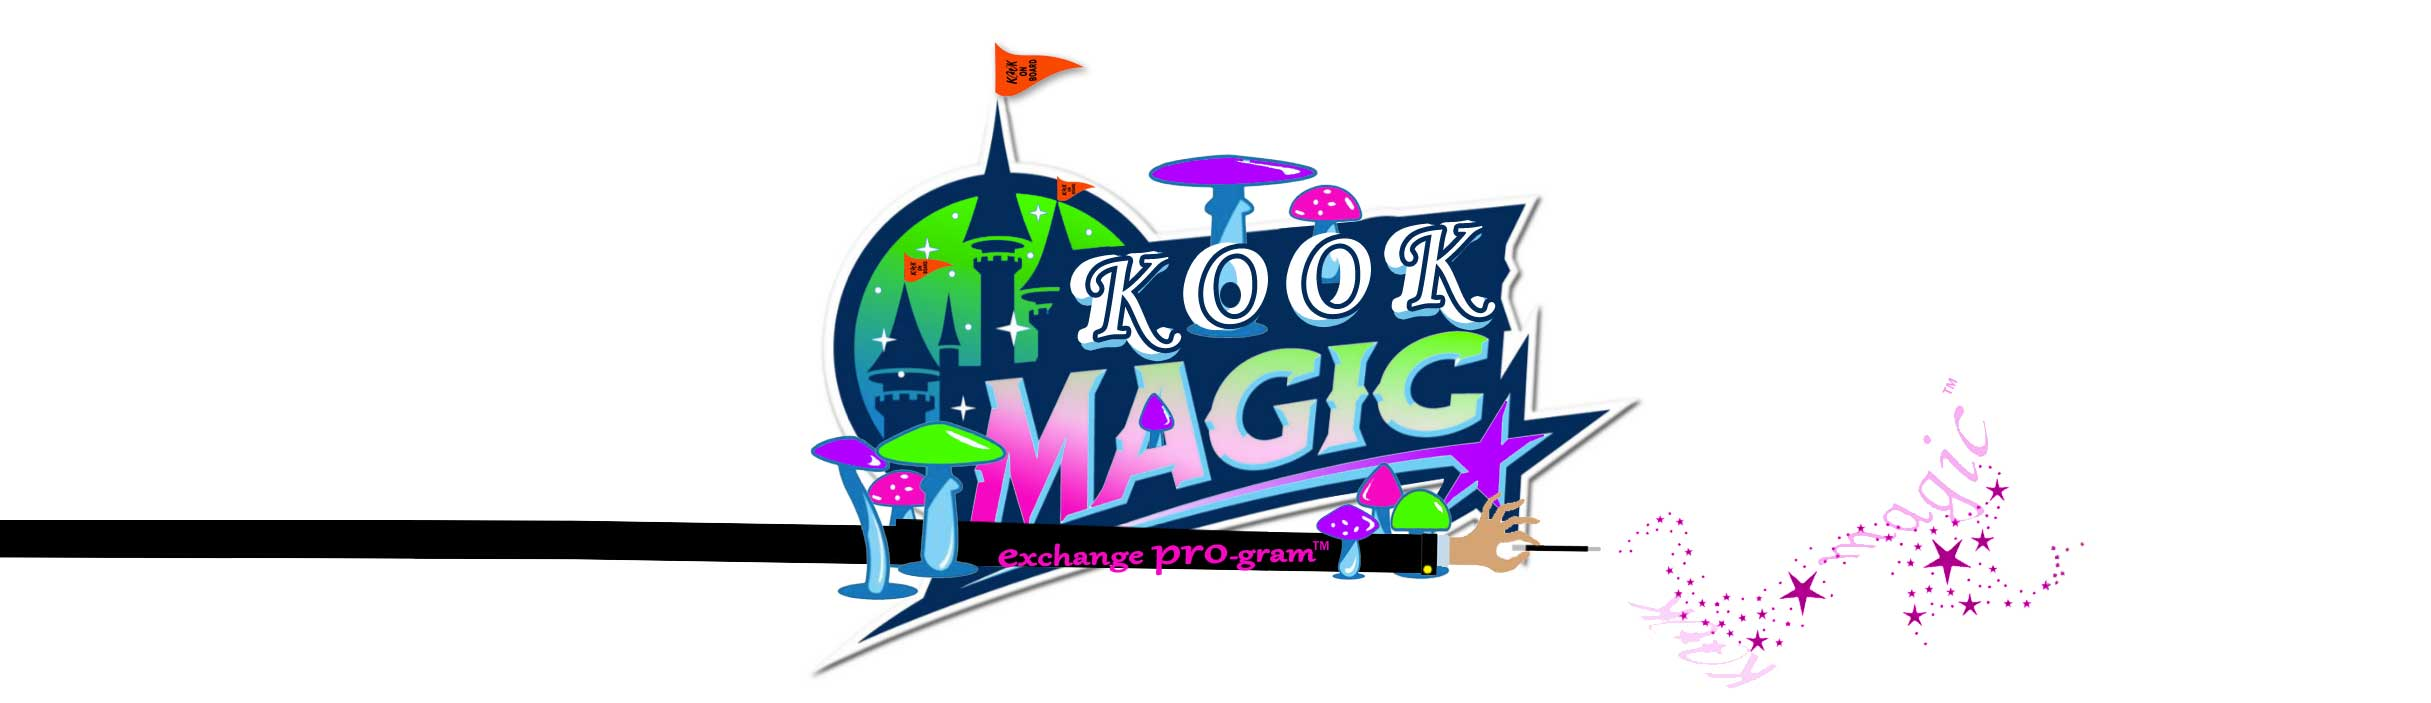 Intl. Kook Exchange Logo